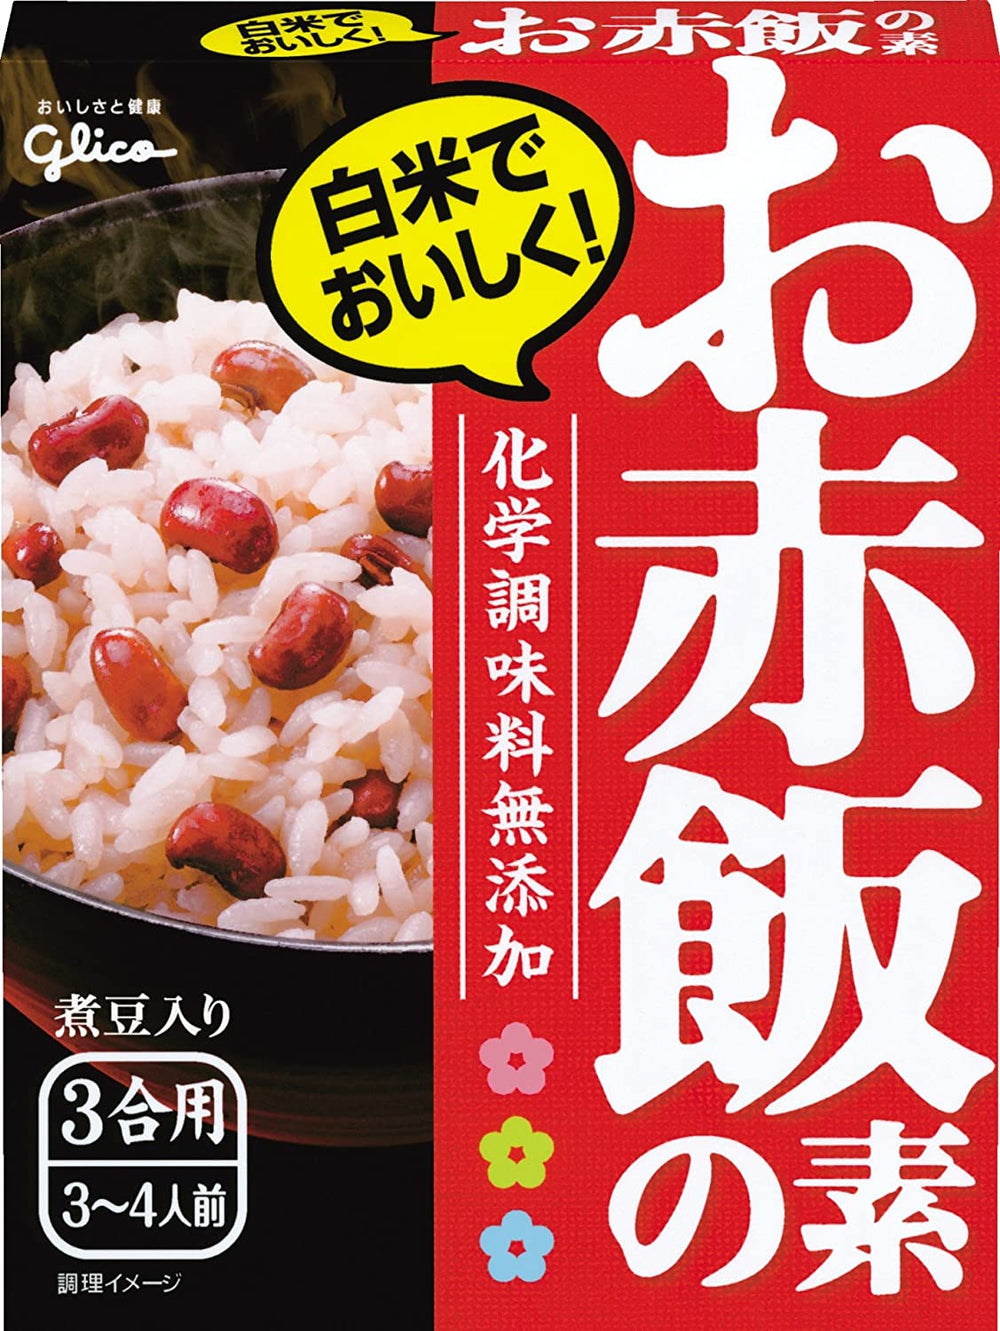 Osekihan no moto / お赤飯の素 200g - Konbiniya Japan Centre